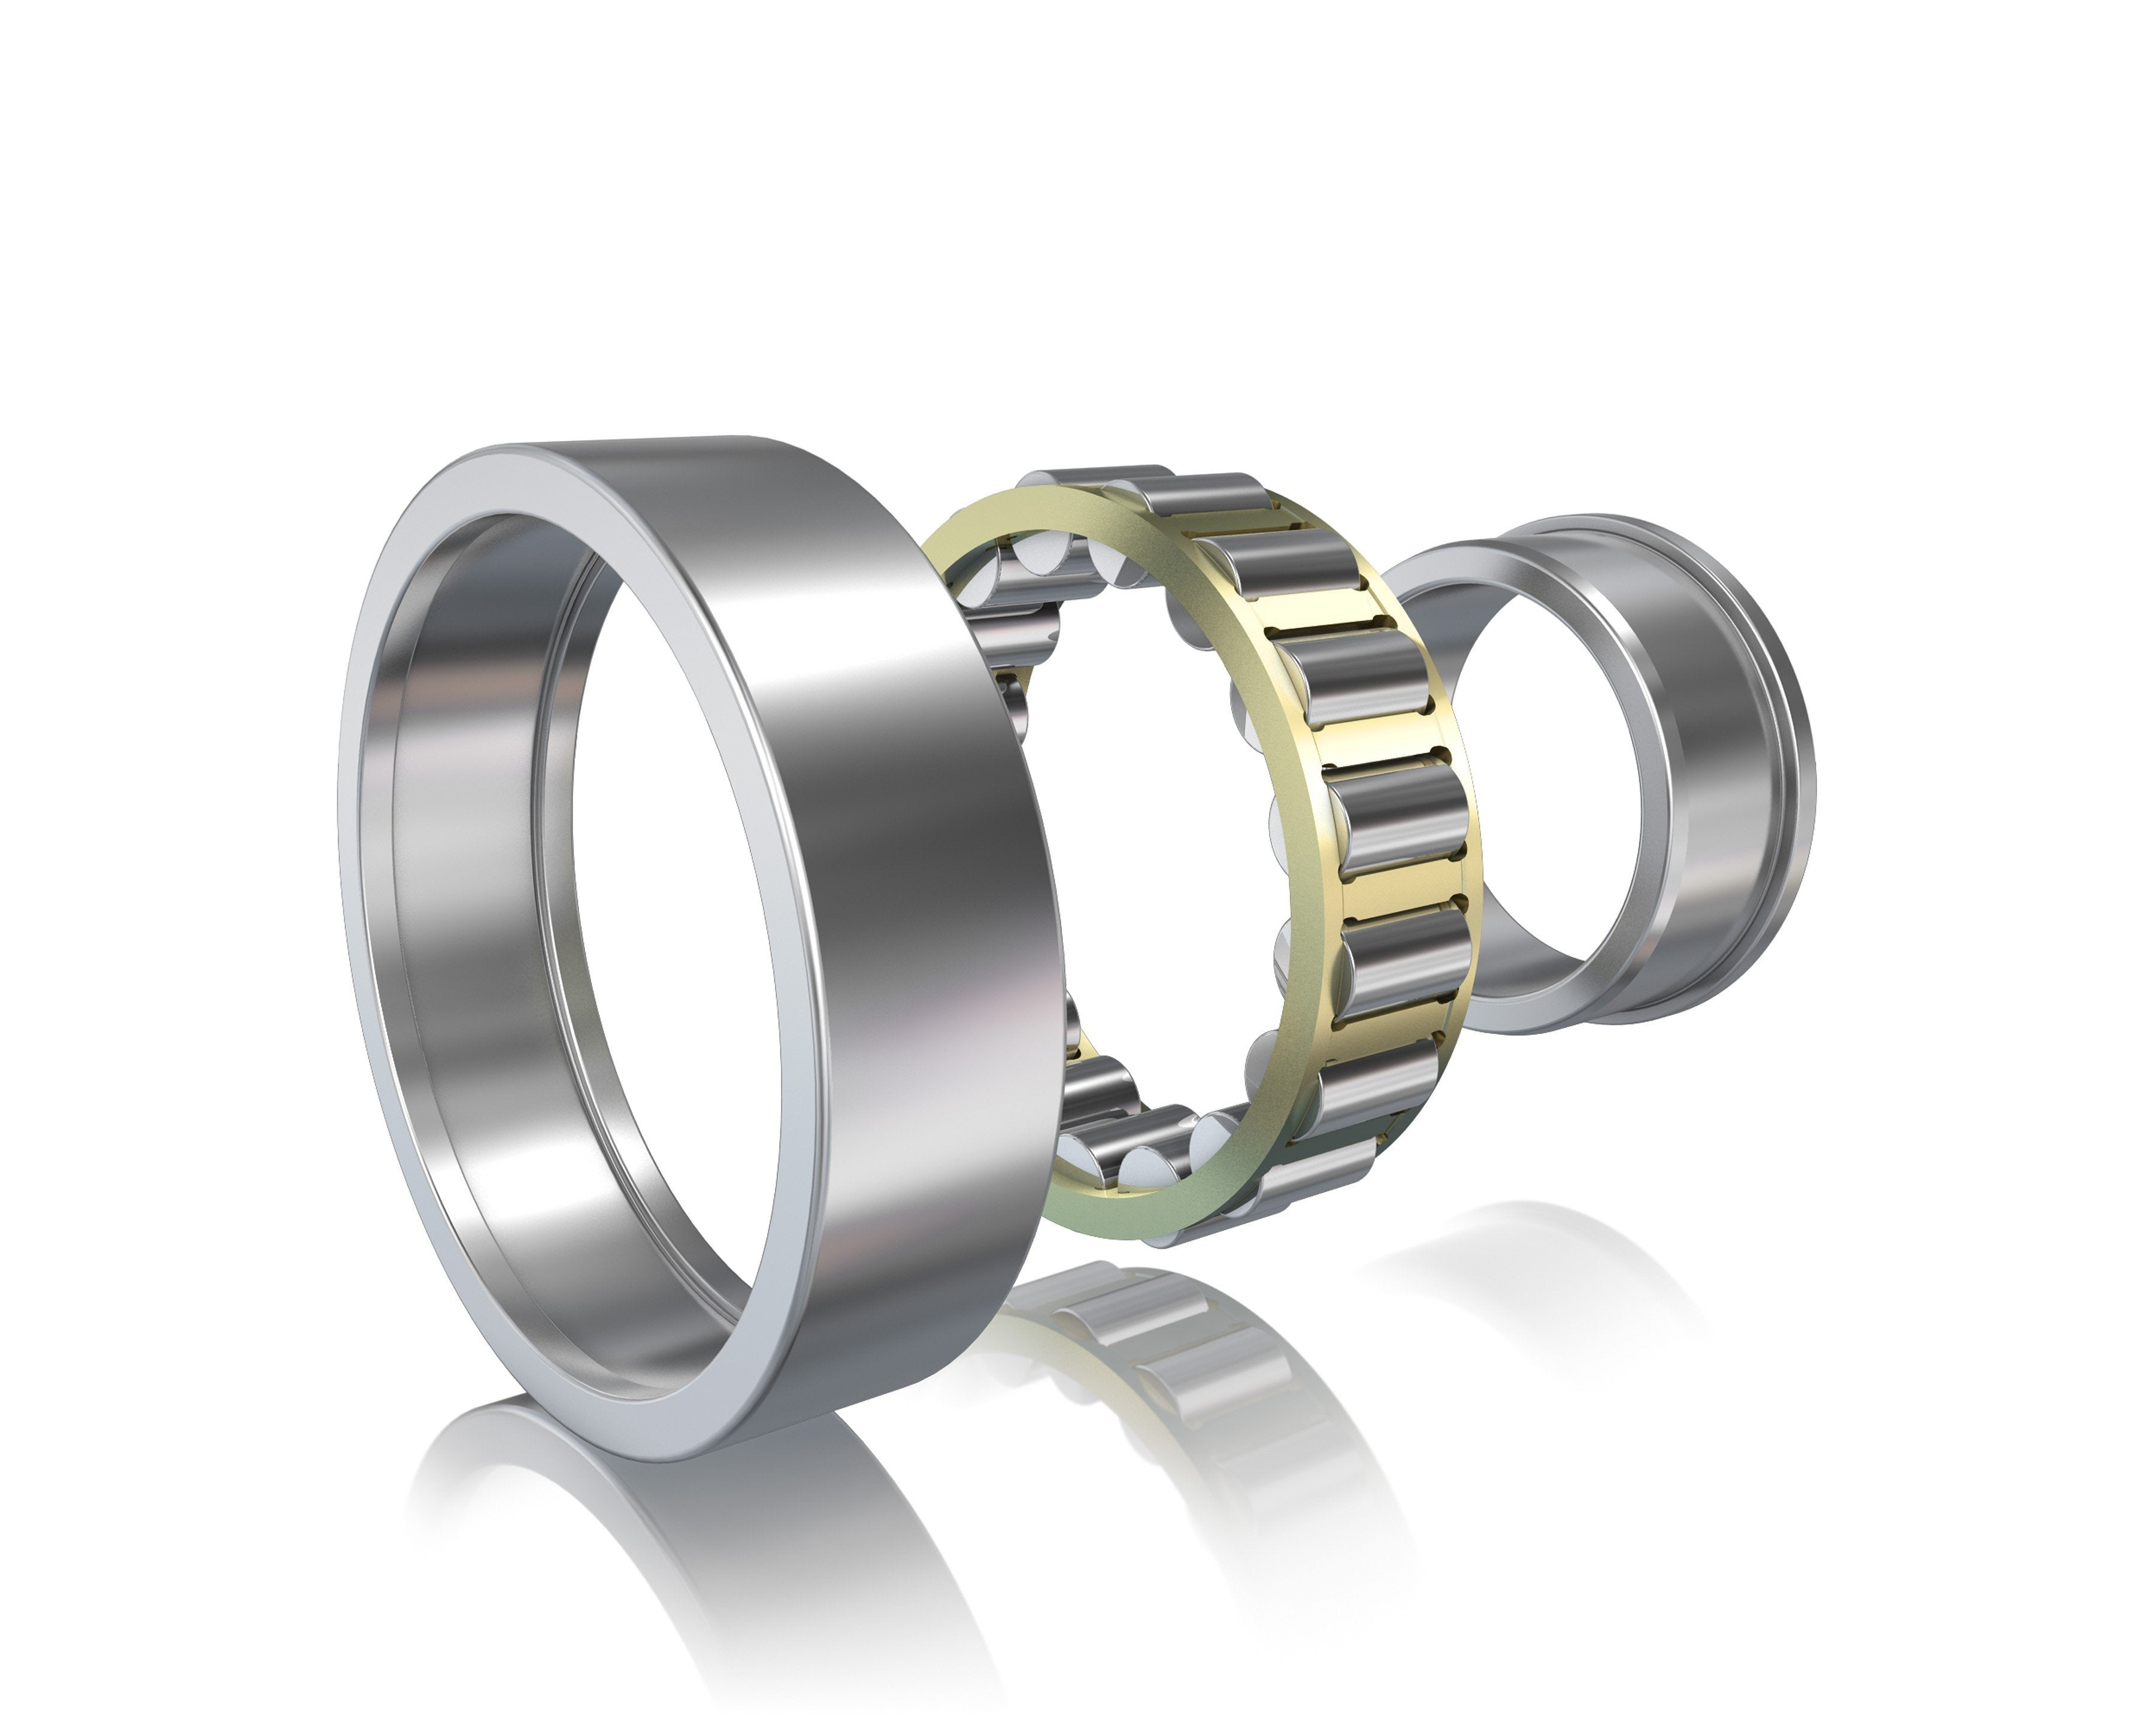 NJ2320-ECJ-SKF, Bearings, Cylindrical roller bearings